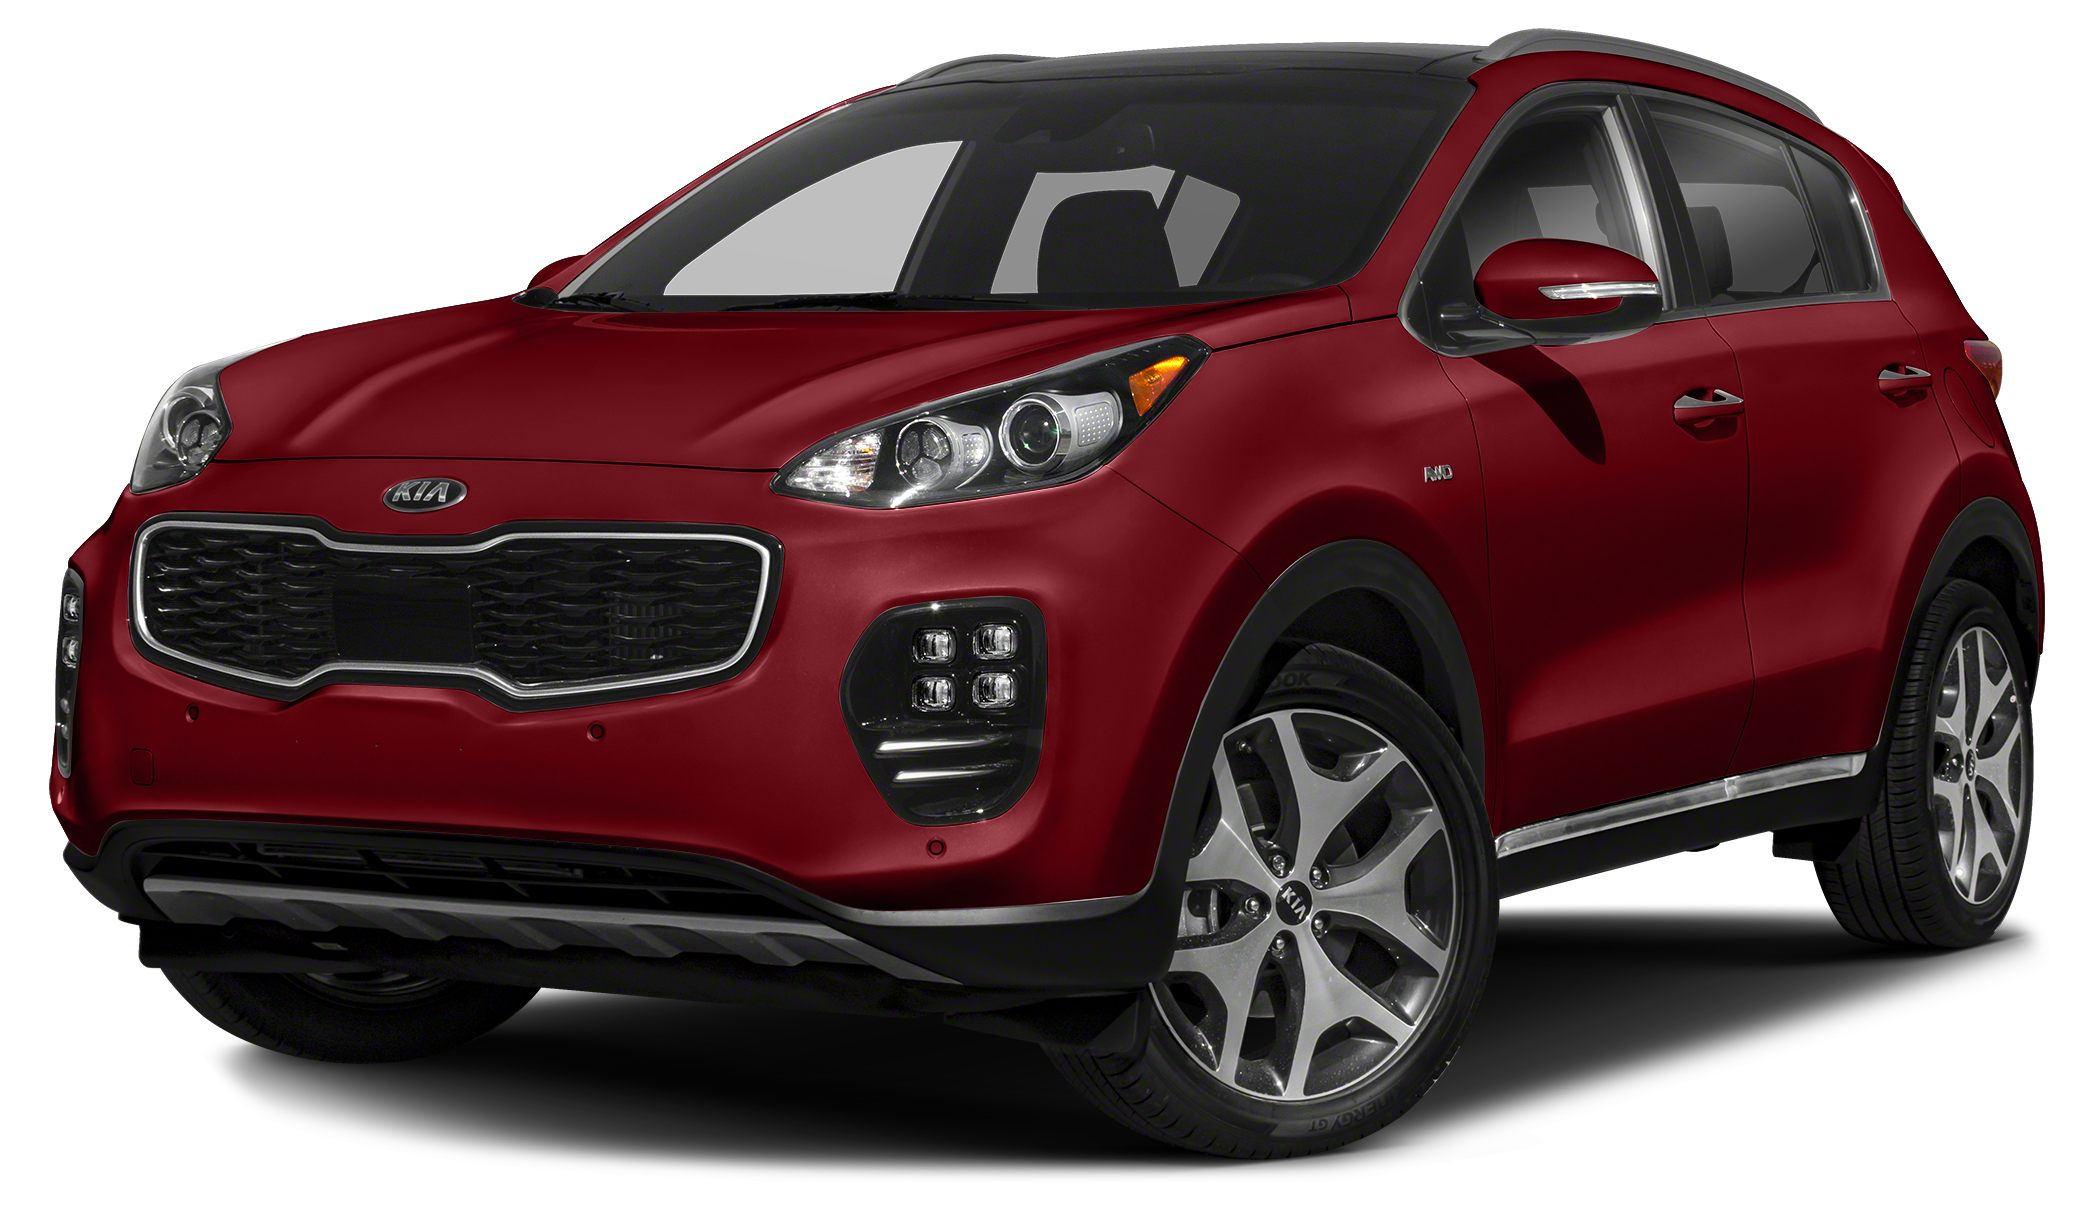 2017 Kia Sportage SX Turbo SAVE AT THE PUMP 26 MPG Hwy You win Just lowered by 1499 Ju